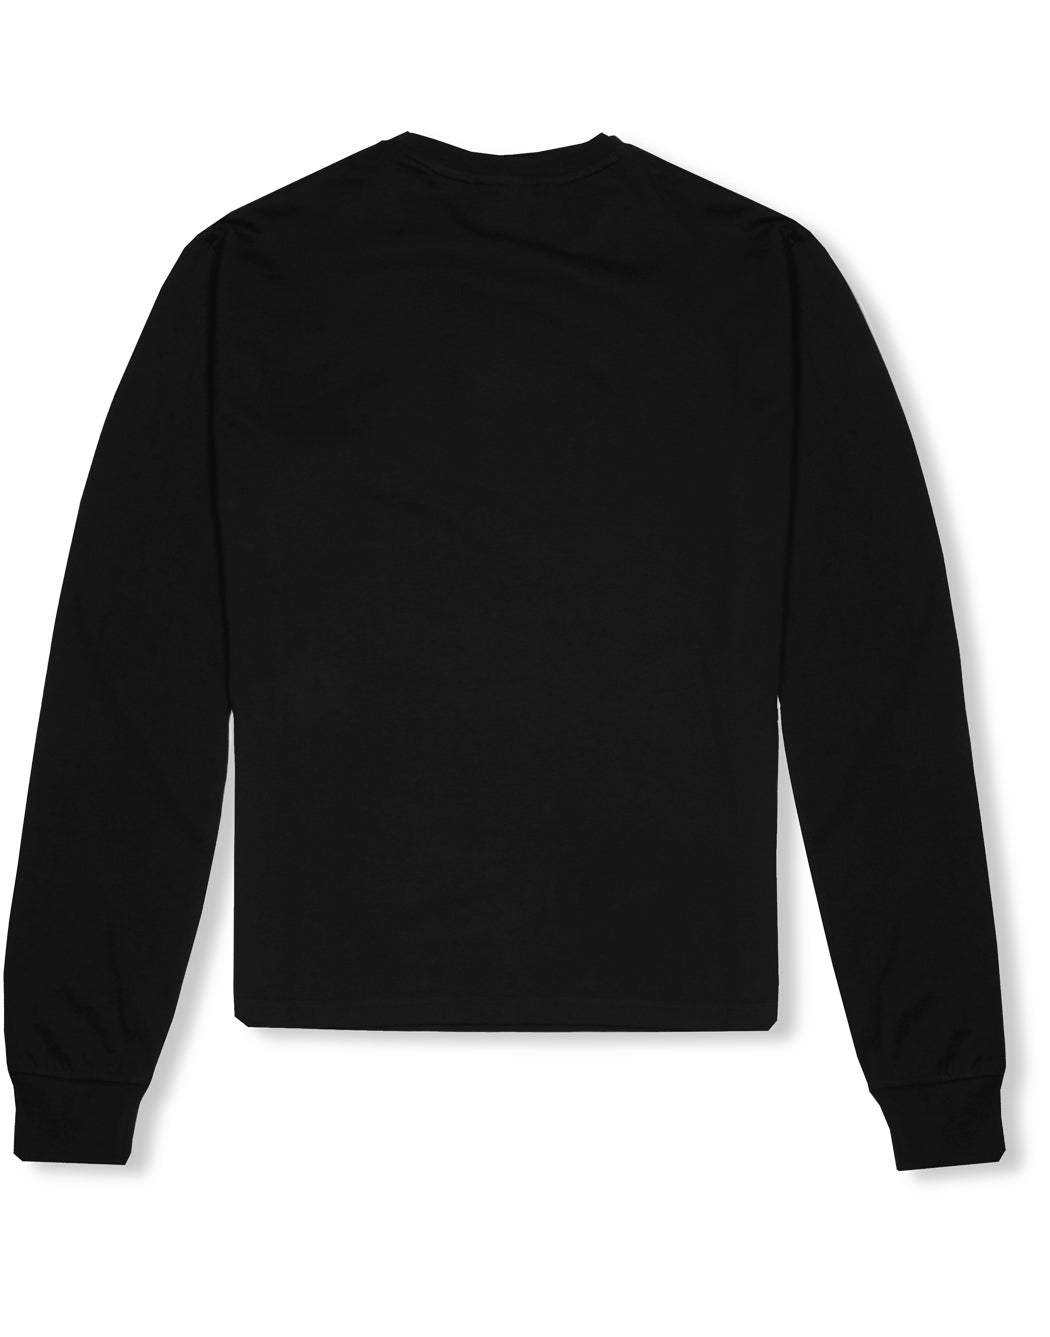 Money Clothing long sleeve tee in black